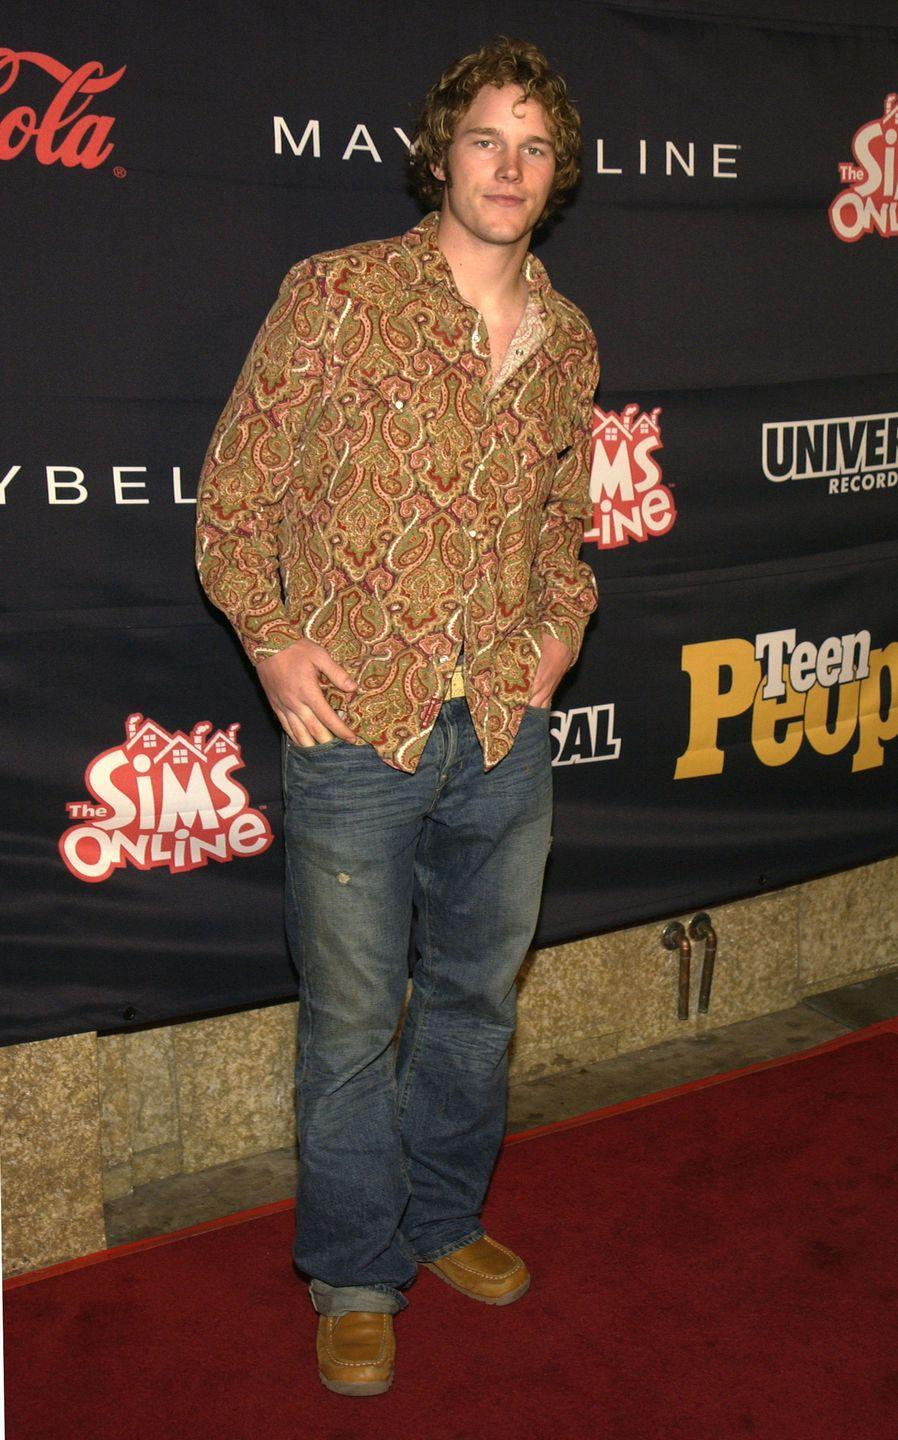 <p>Before he was a movie star, Chris was just a guy who showed up to an event honoring Nelly wearing a paisley button-down and relaxed-fit jeans.</p>